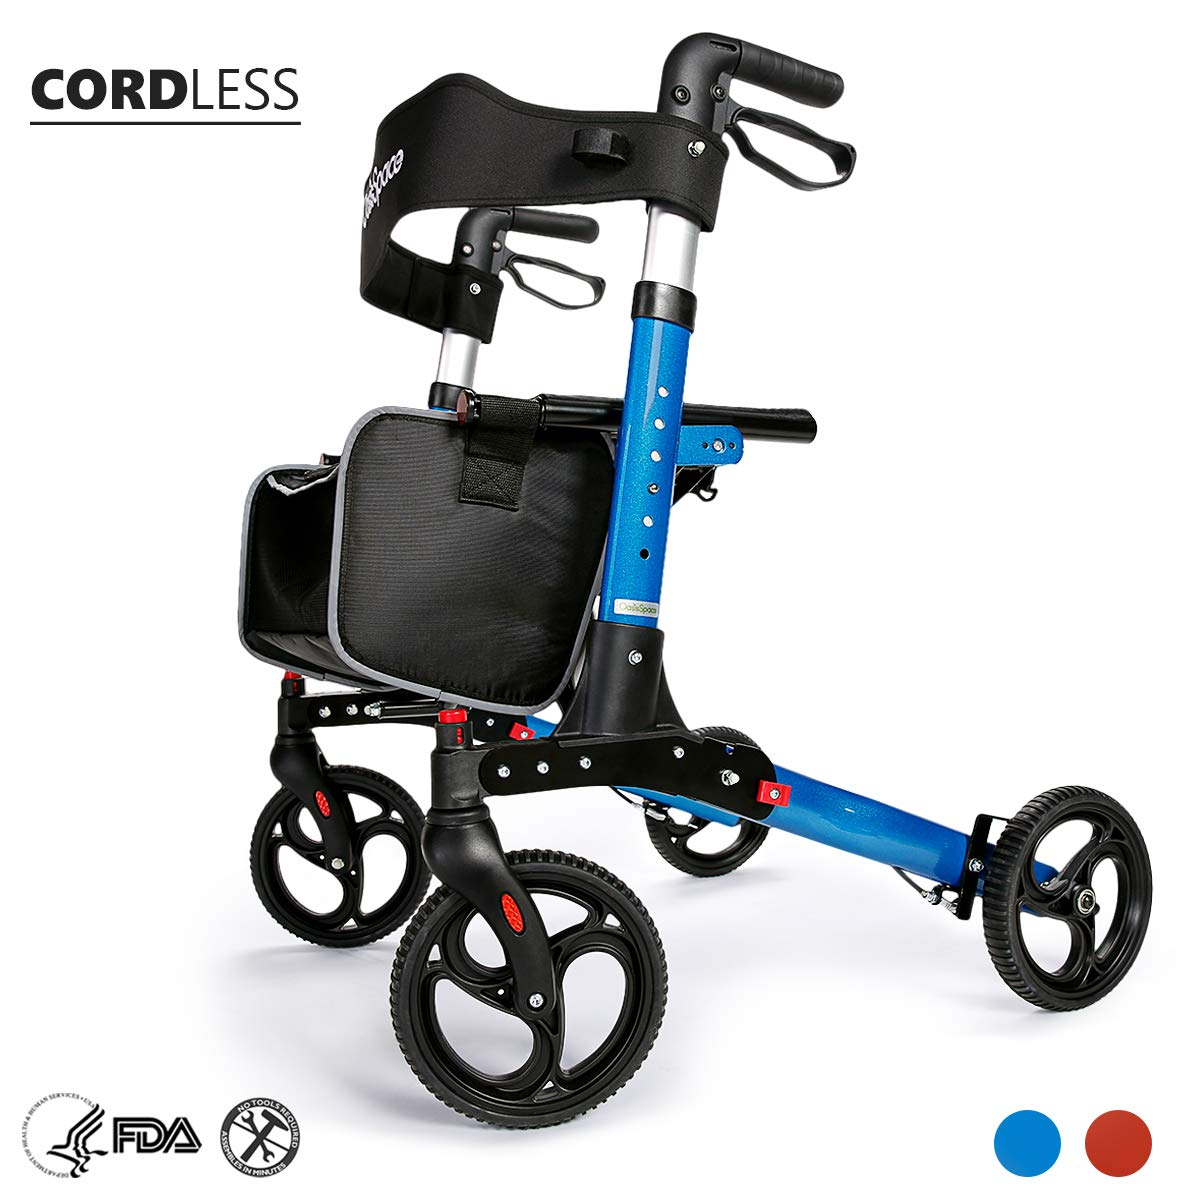 OasisSpace Ultra Folding Rollator Walker with Wide Seat 8 inches Antiskid Wheels Compact Design Baking Finish Walkers for Senior (Blue) by OasisSpace